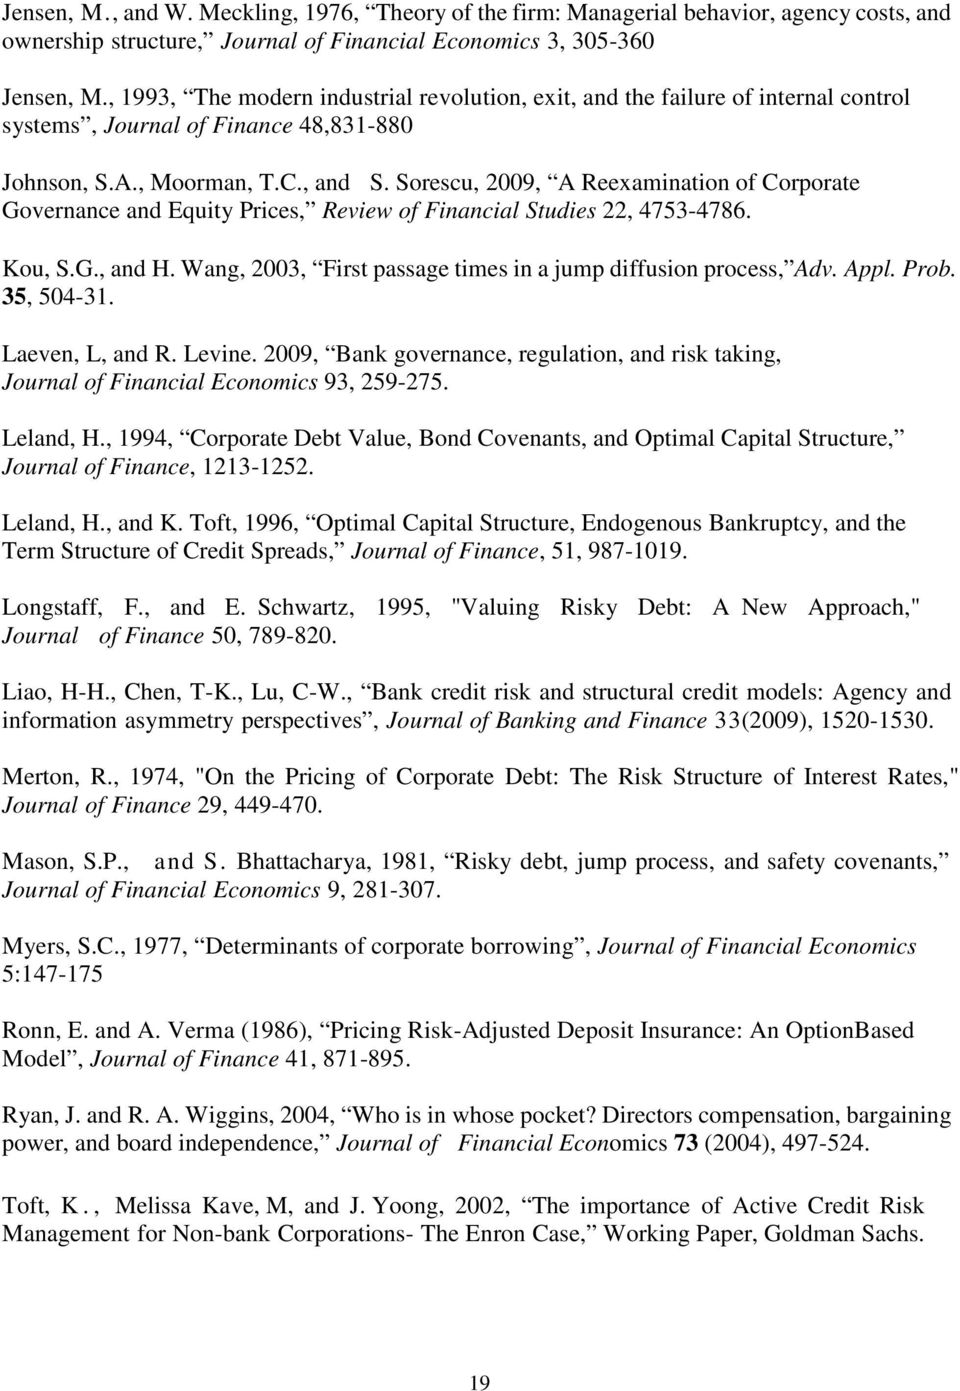 Sorescu, 2009, A Reexamination of Corporate Governance and Equity Prices, Review of Financial Studies 22, 4753-4786. Kou, S.G., and H. Wang, 2003, First passage times in a jump diffusion process, Adv.